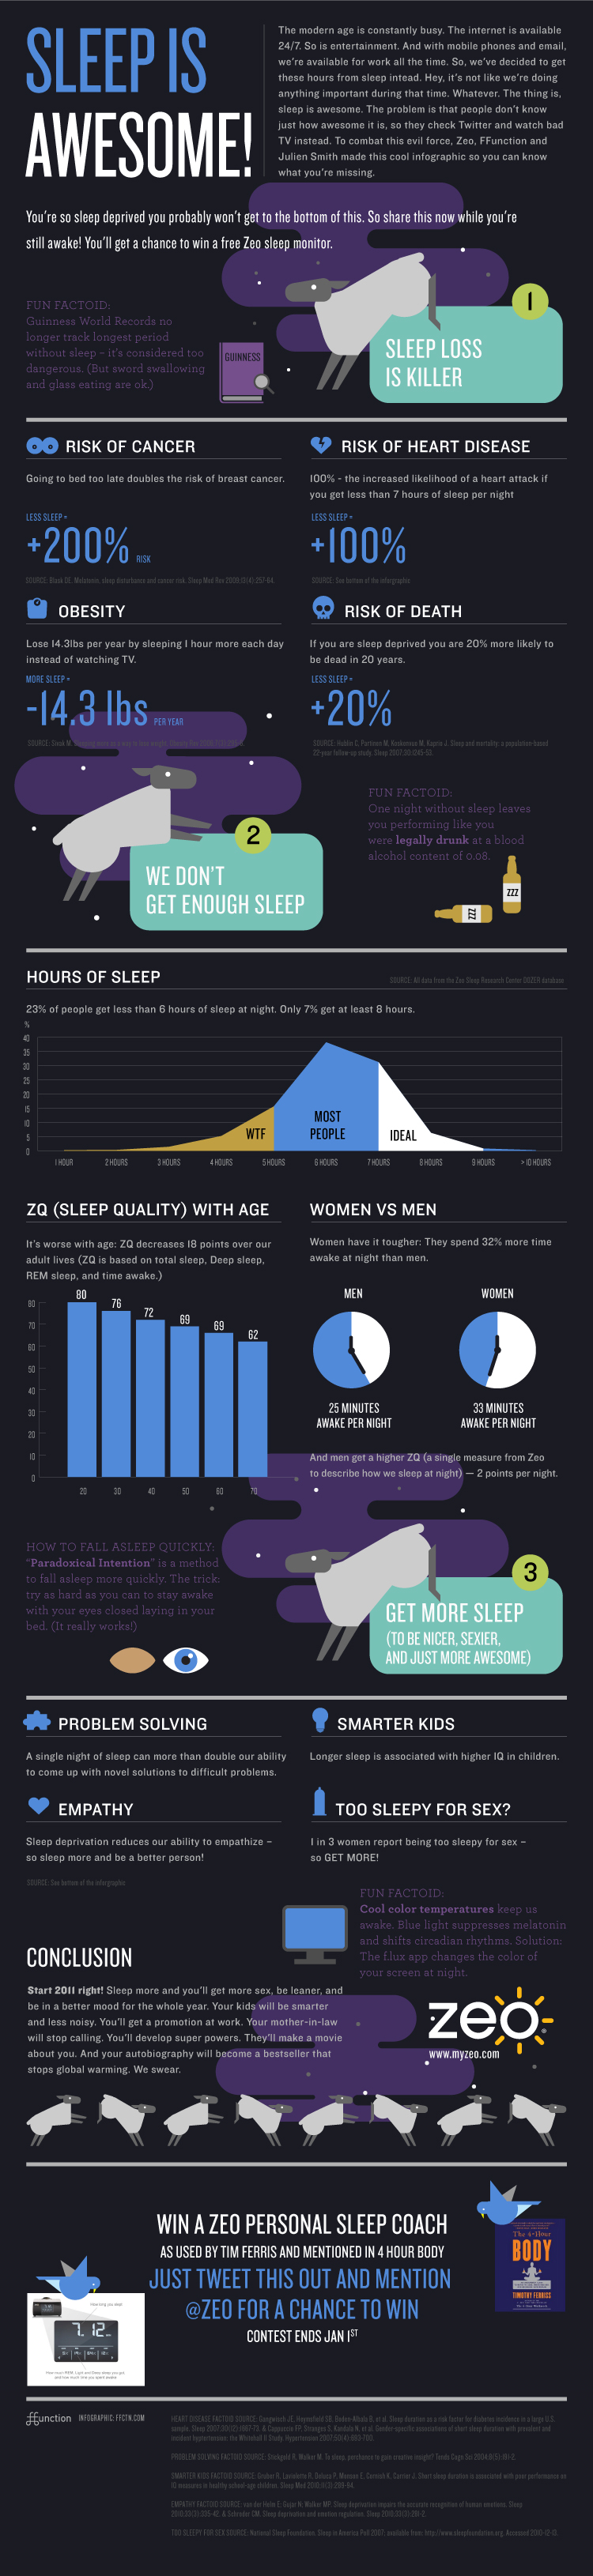 zeo-sleep-infographic